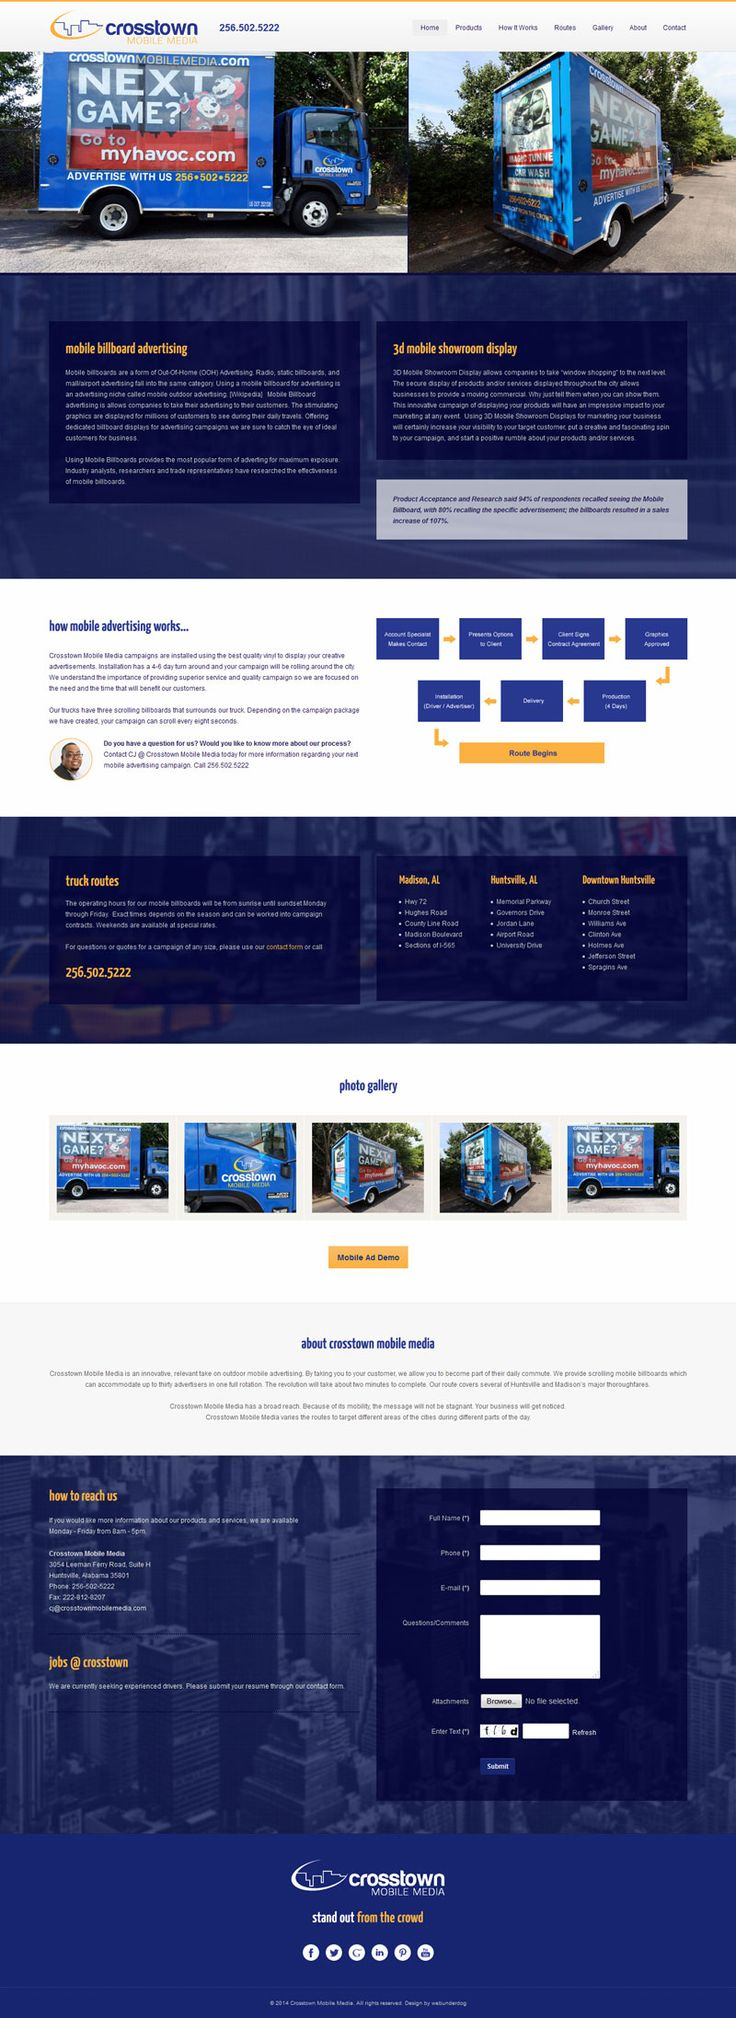 #Responsive One Page #webdesign with ScrollReveal.js effects and jump menu for Crosstown Mobile Media   (Huntsville, AL). Custom built on #Joomla 3 CMS. #webdesign #customdesign #onepage #modern #inspiration #creative #landingpage #template #theme #business #corporate #portfolio #agency